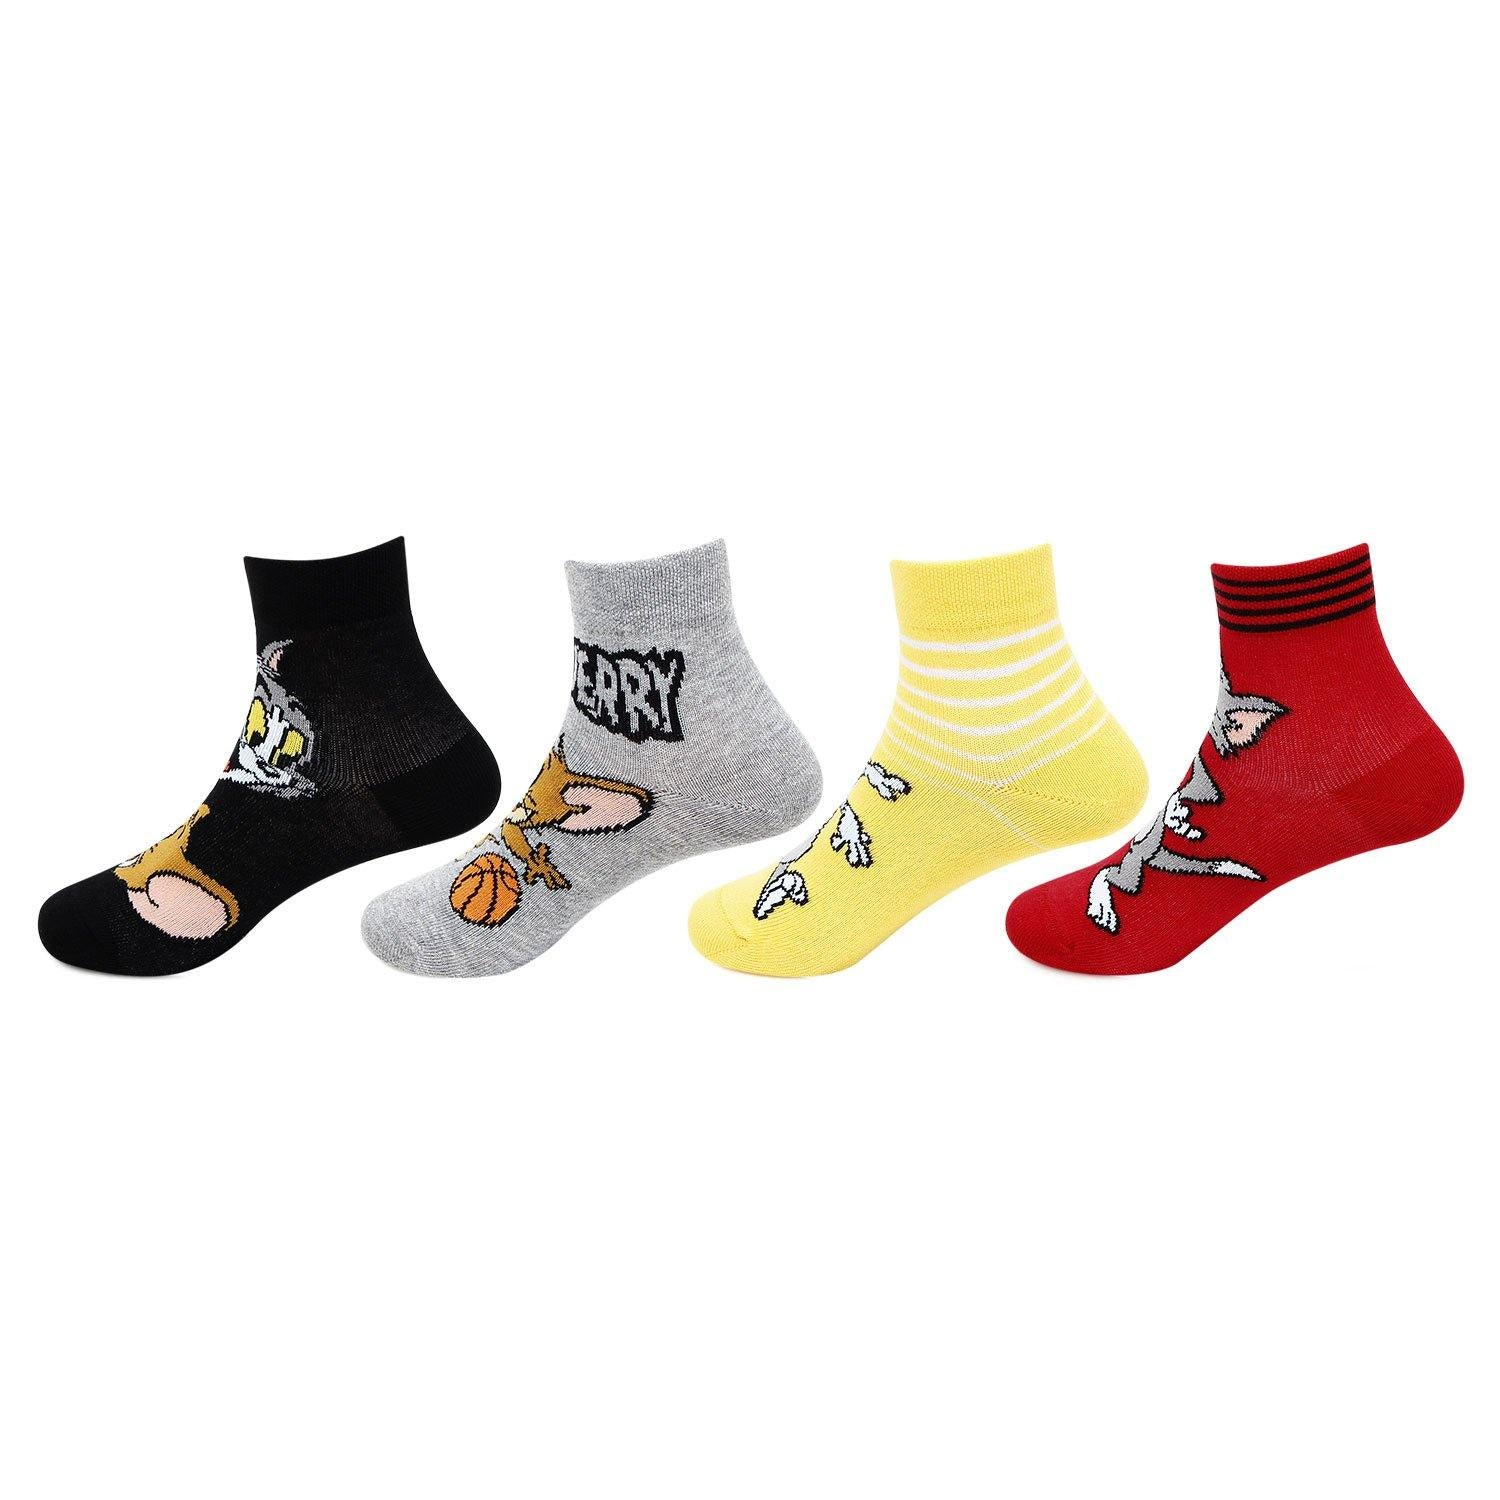 Tom and Jerry ankle socks for kids